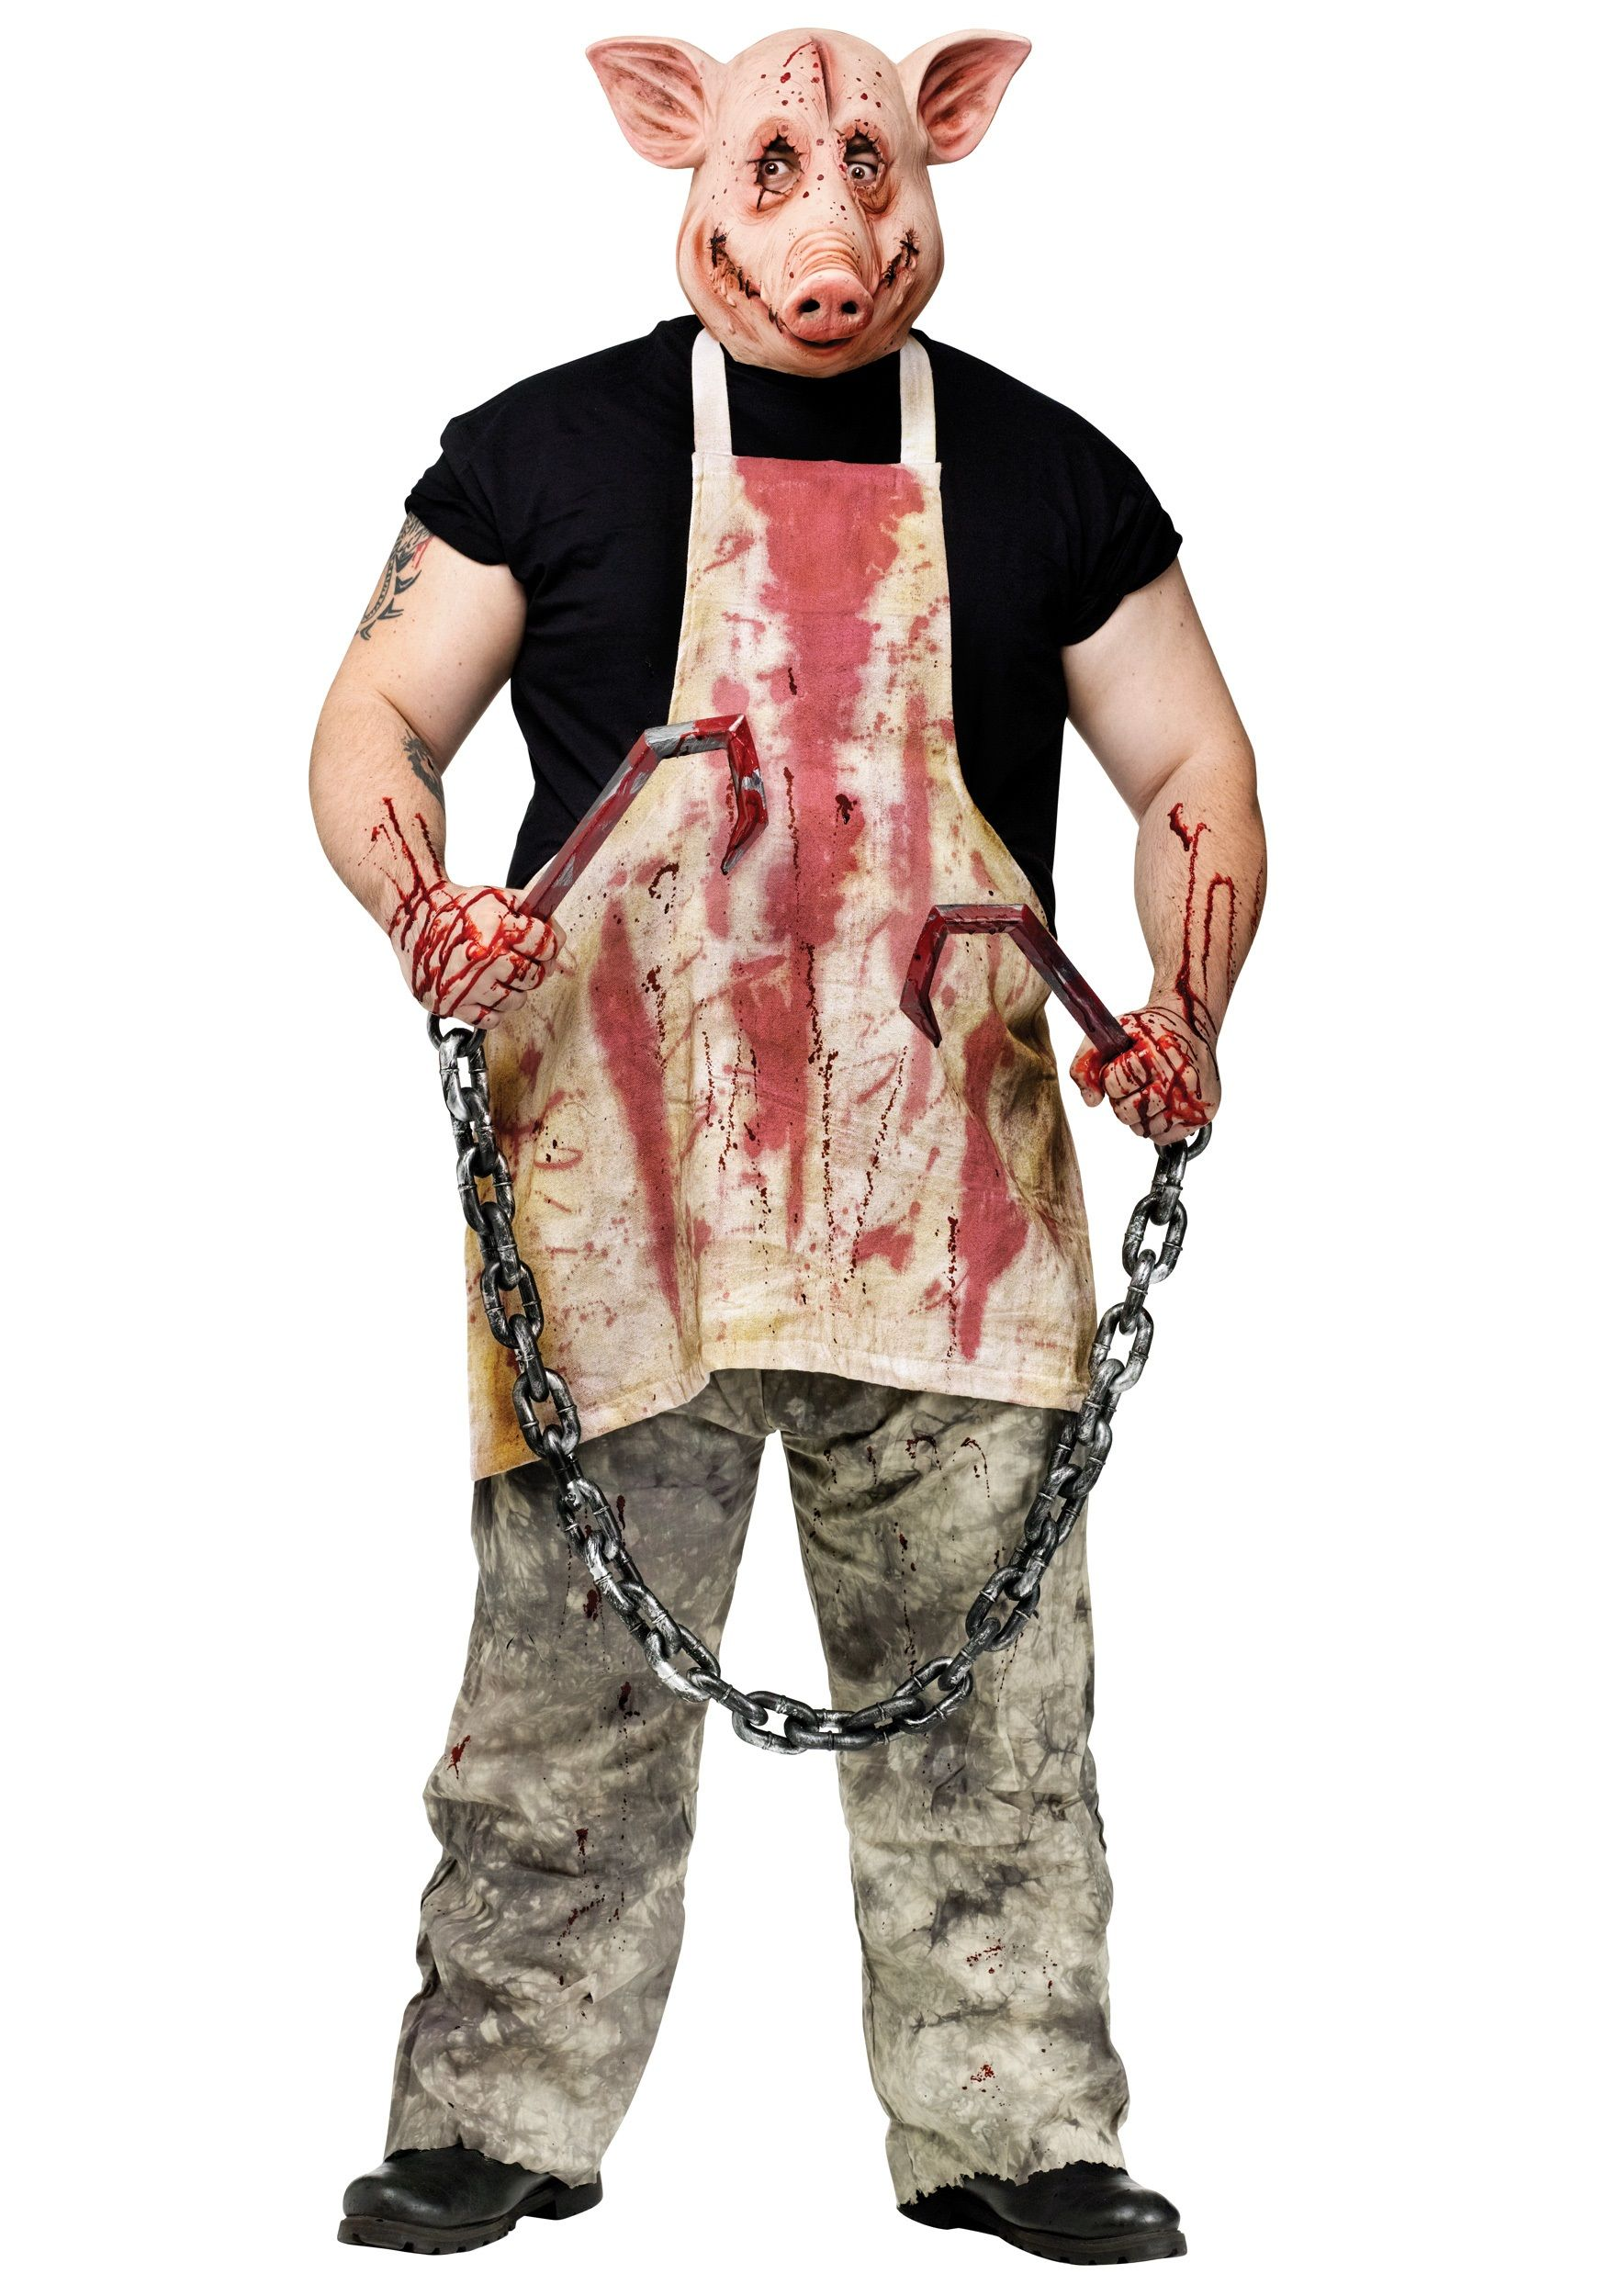 Butcher Pig Costume | Pig costumes, Costumes and Scary costumes